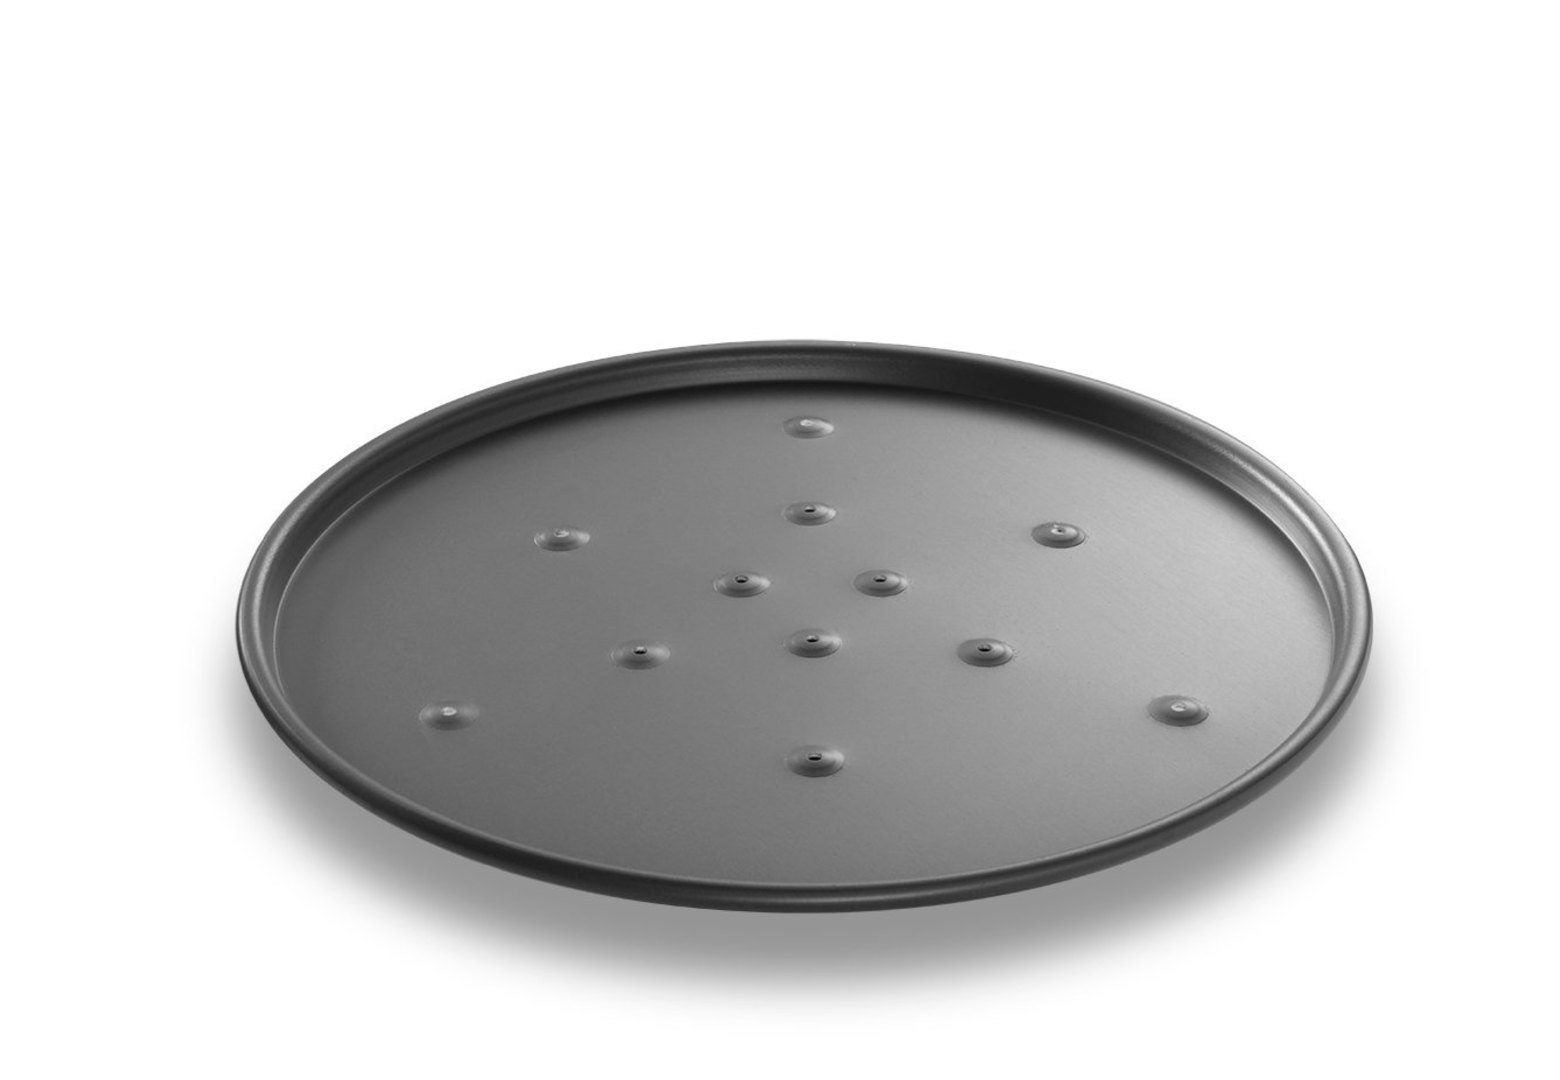 BĀKALON THIN CRUST PIZZA PAN